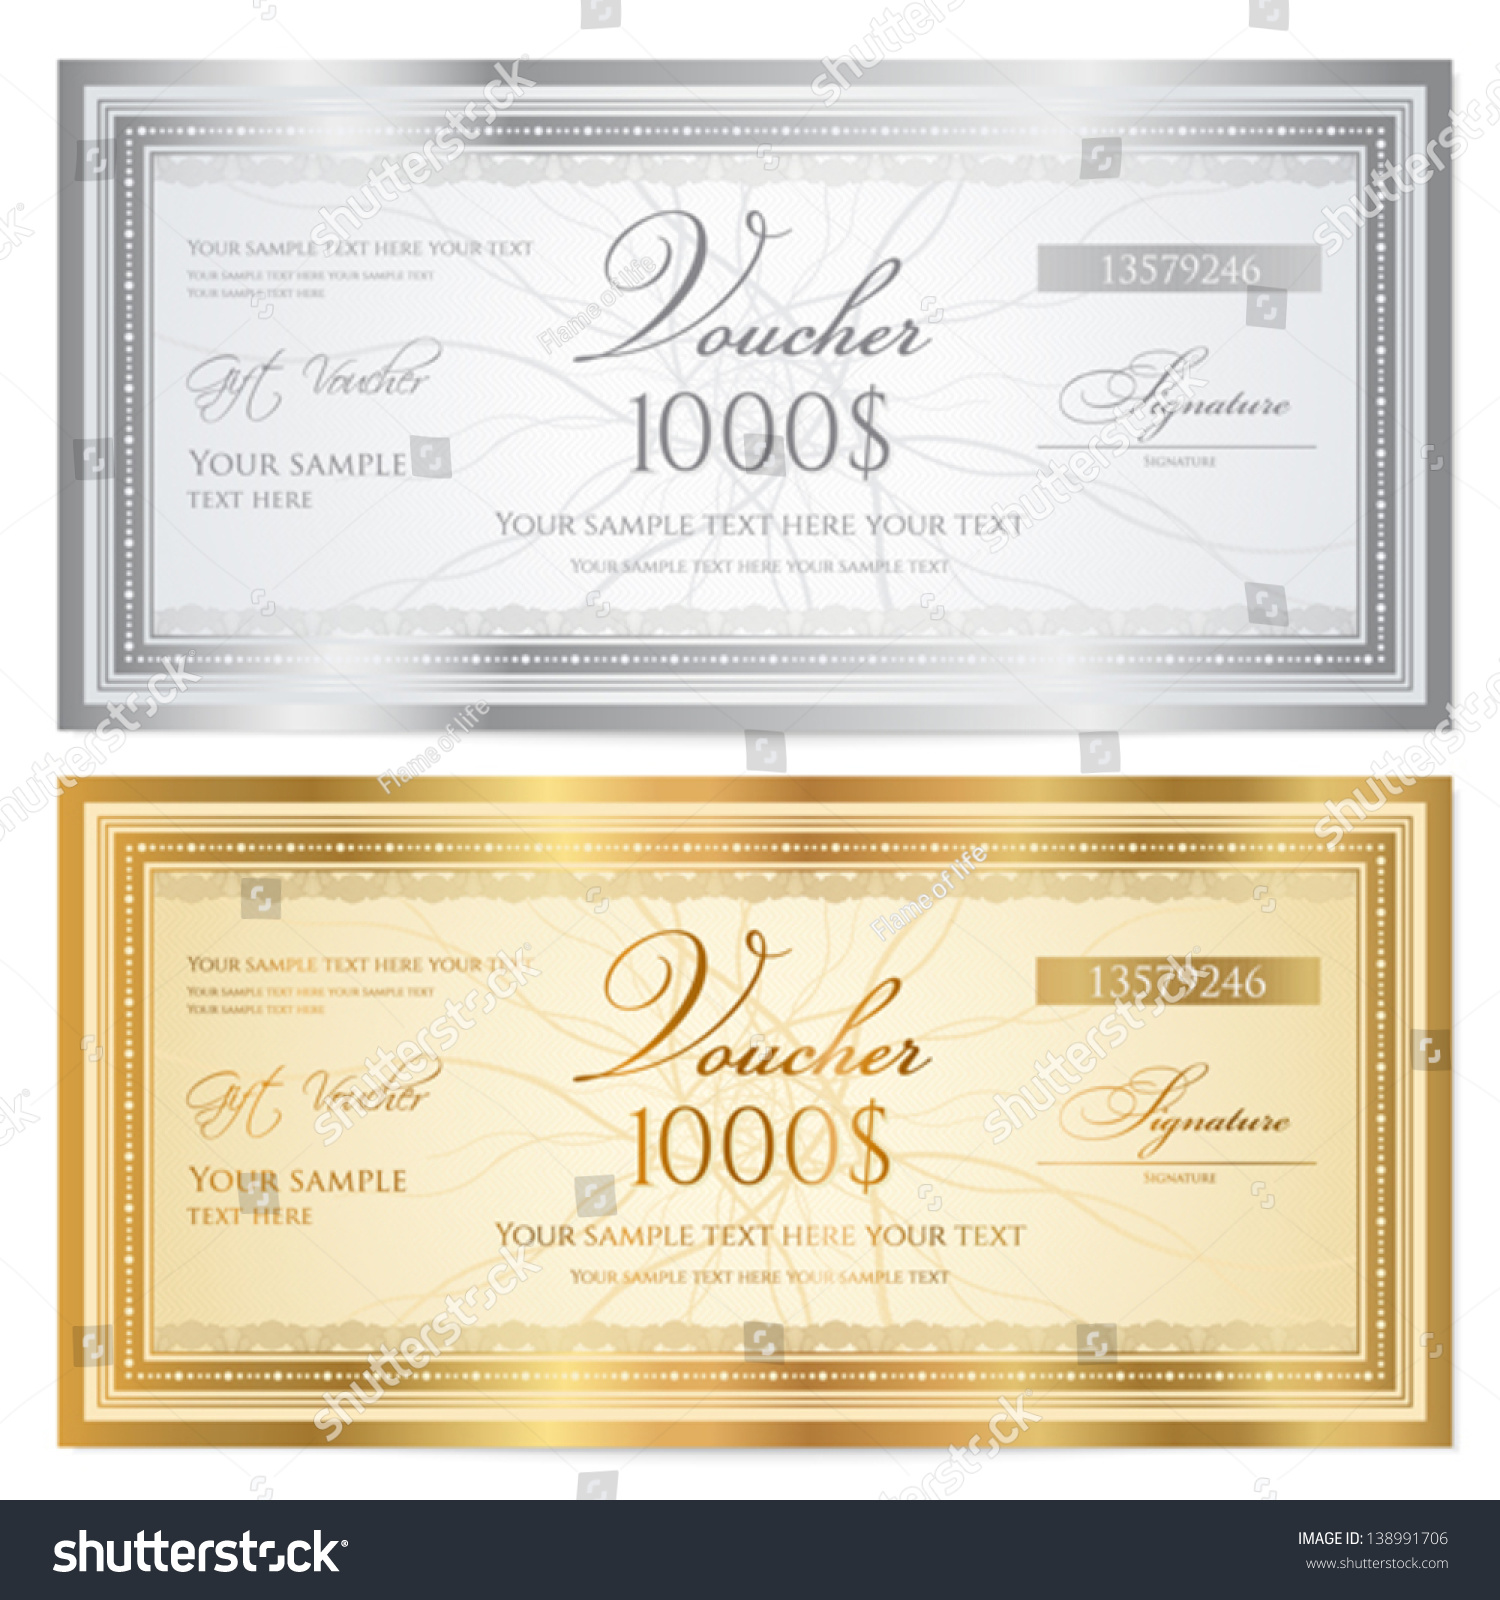 Engagement gift certificate template choice image certificate doc685351 voucher samples expense voucher happy birthday card free printable gift yadclub Images